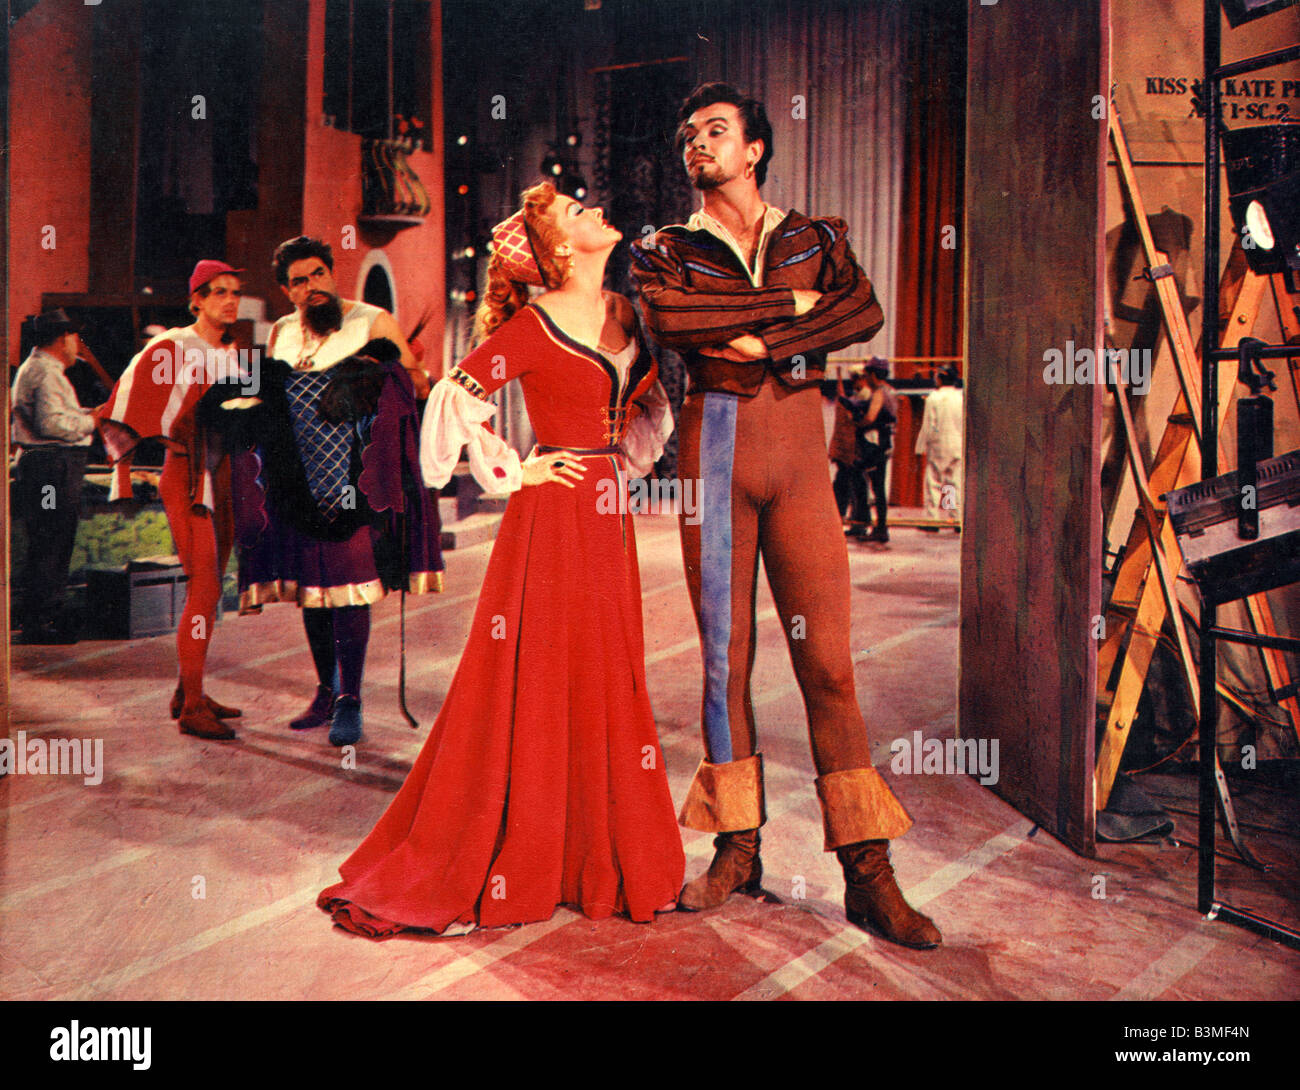 KISS ME KATE 1953 MGM film with Howard Keel and Kathryn Grayson - Stock Image